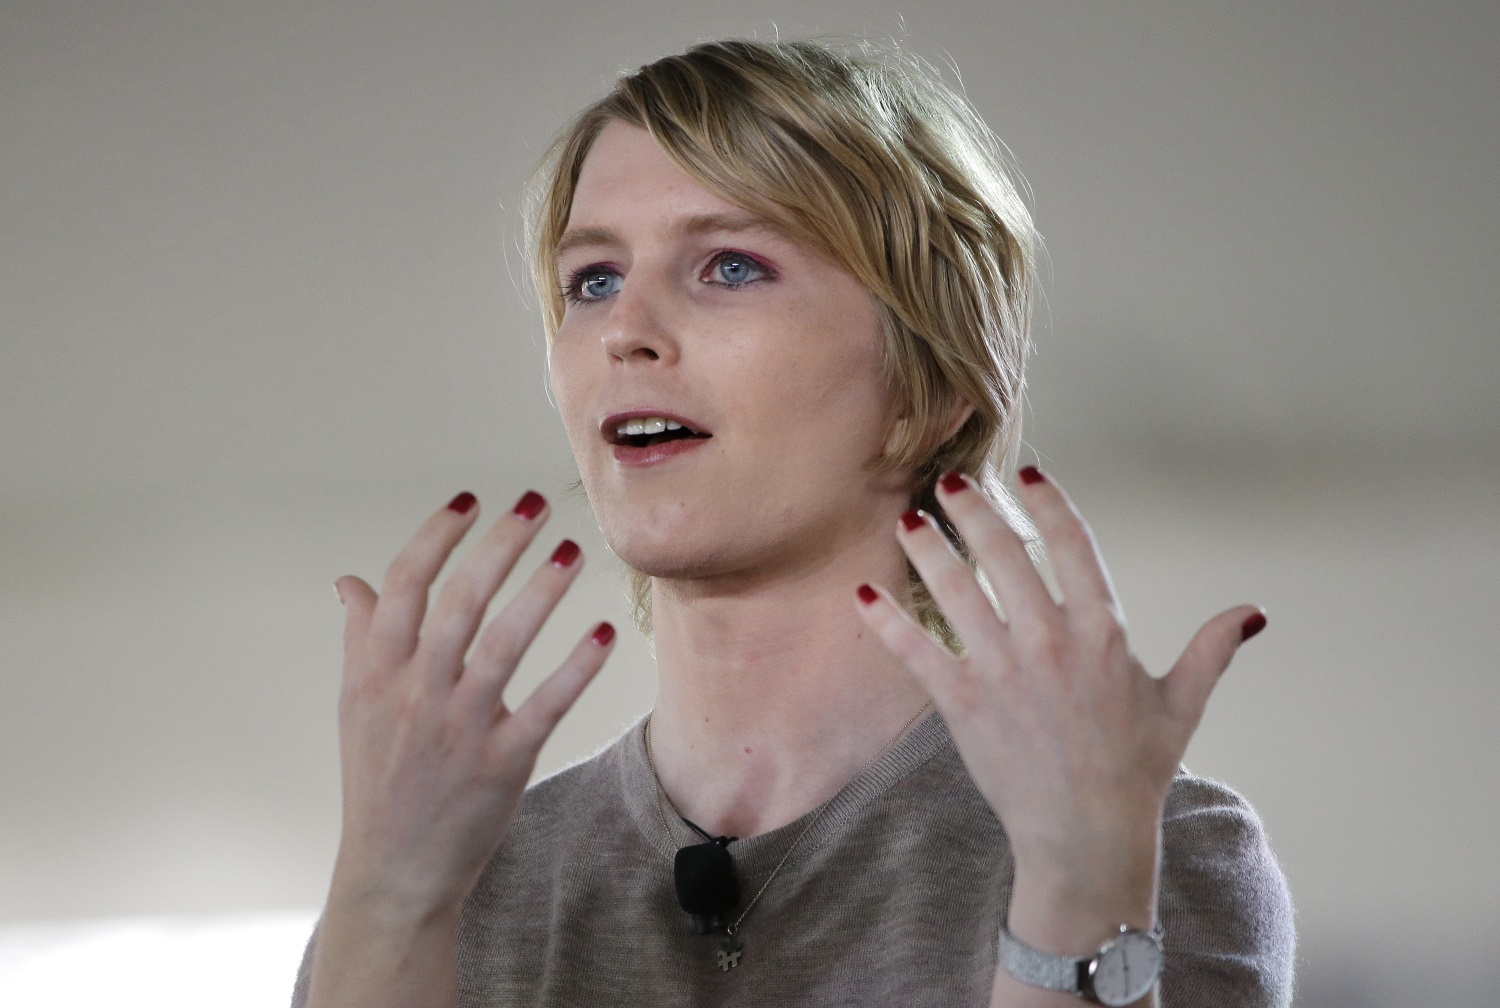 Chelsea Manning addresses the audience during a forum Sept. 17 in Nantucket, Mass. (Steven Senne/AP)